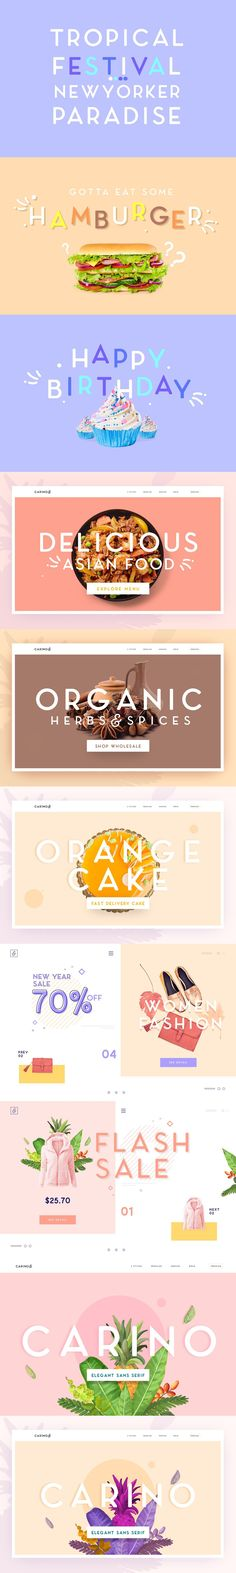 Carino - A Modern Elegant Typeface - Web & Graphic Design on SVG Ninja Typography Fonts, Typography Design, Branding Design, Wedding Fonts, Happy Design, Brand Guidelines, Cute Pins, Cool Fonts, Handmade Design